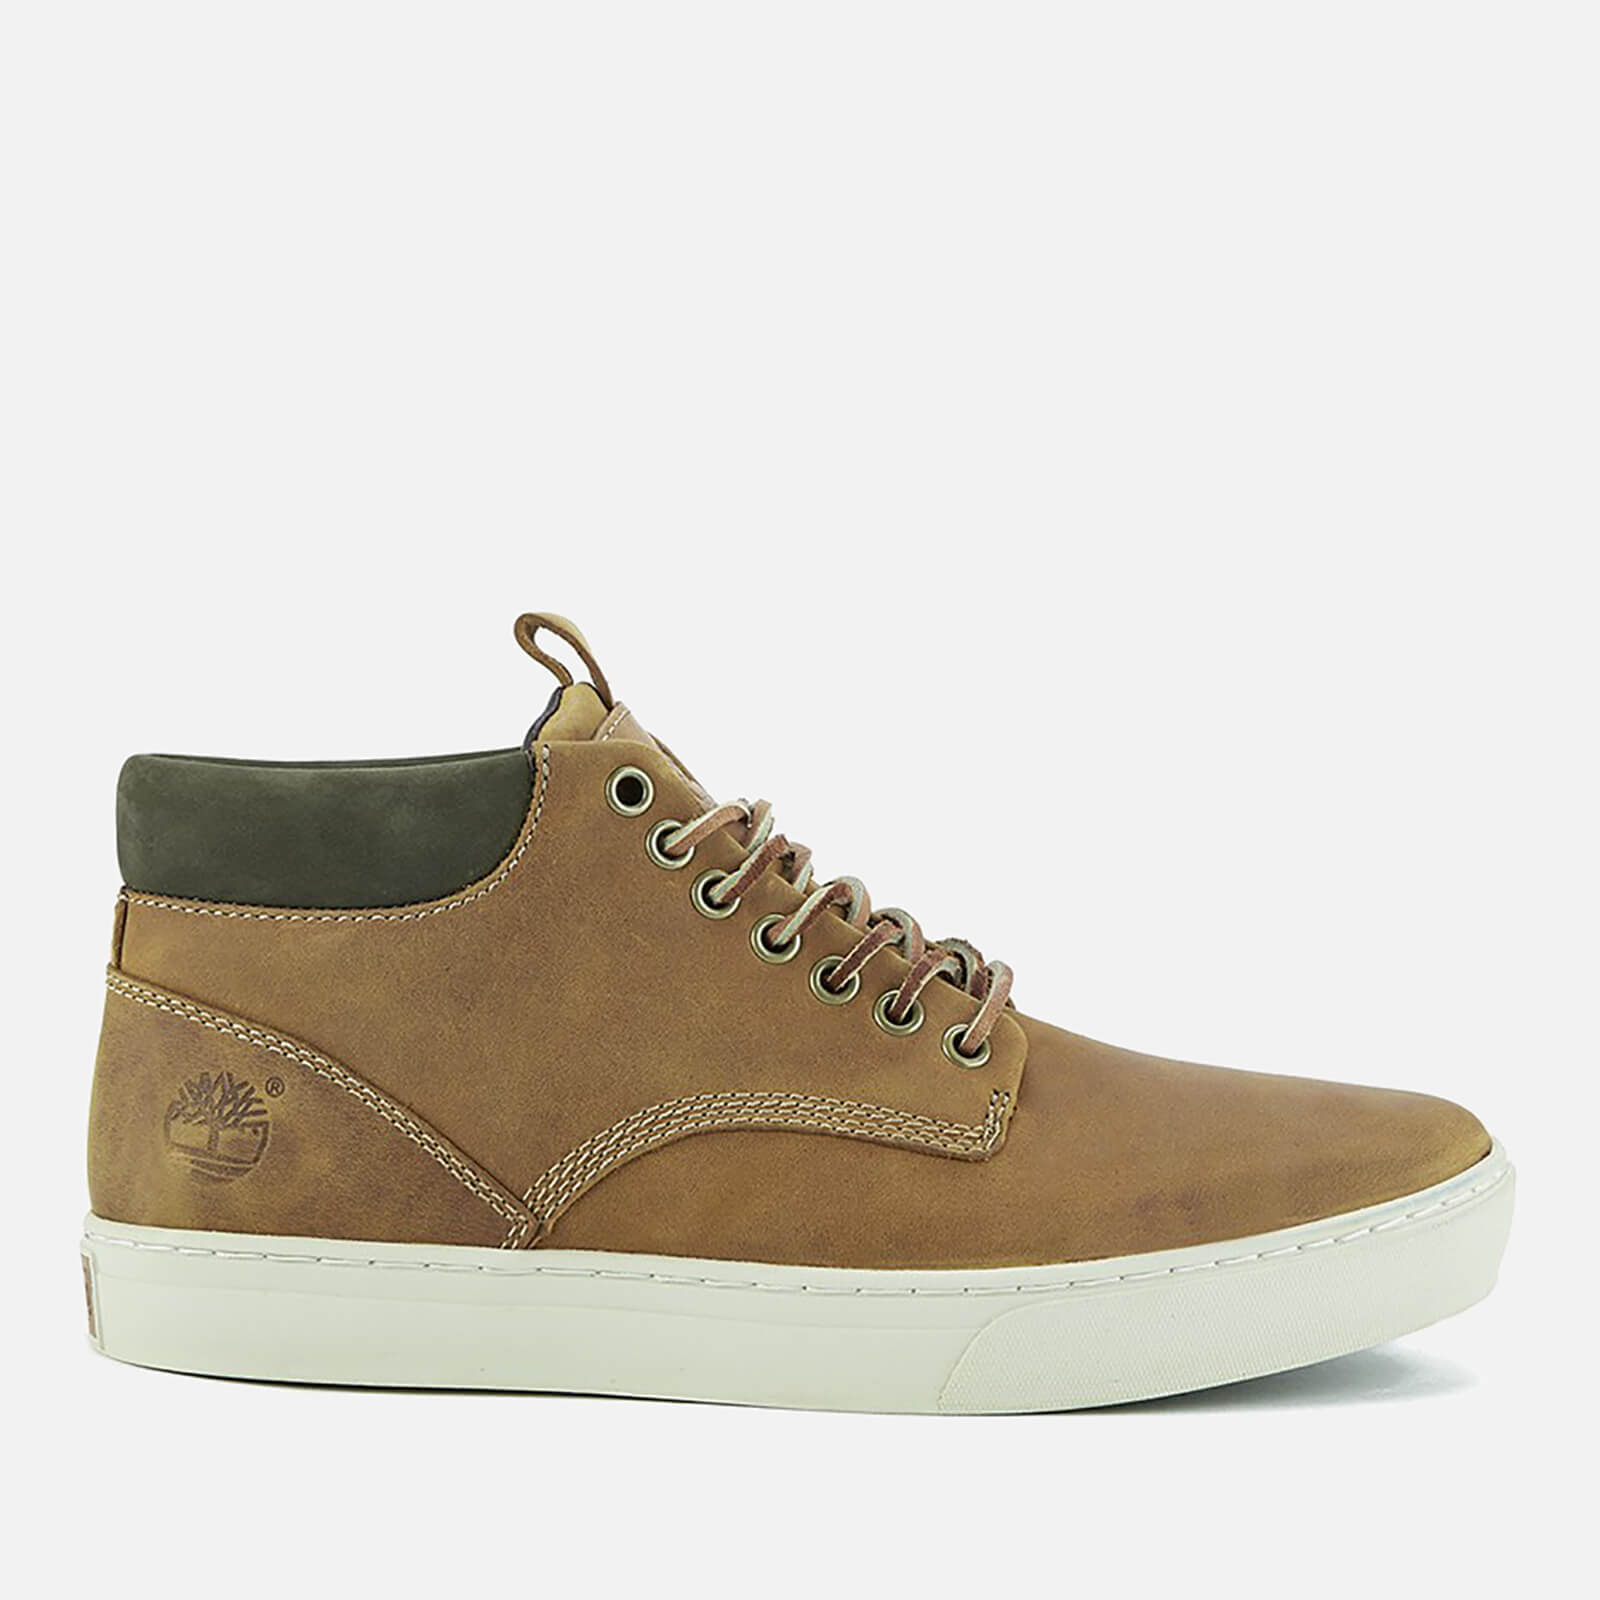 124058177fa Timberland Men's Adventure 2.0 Cupsole Chukka Boots - Burnished Wheat